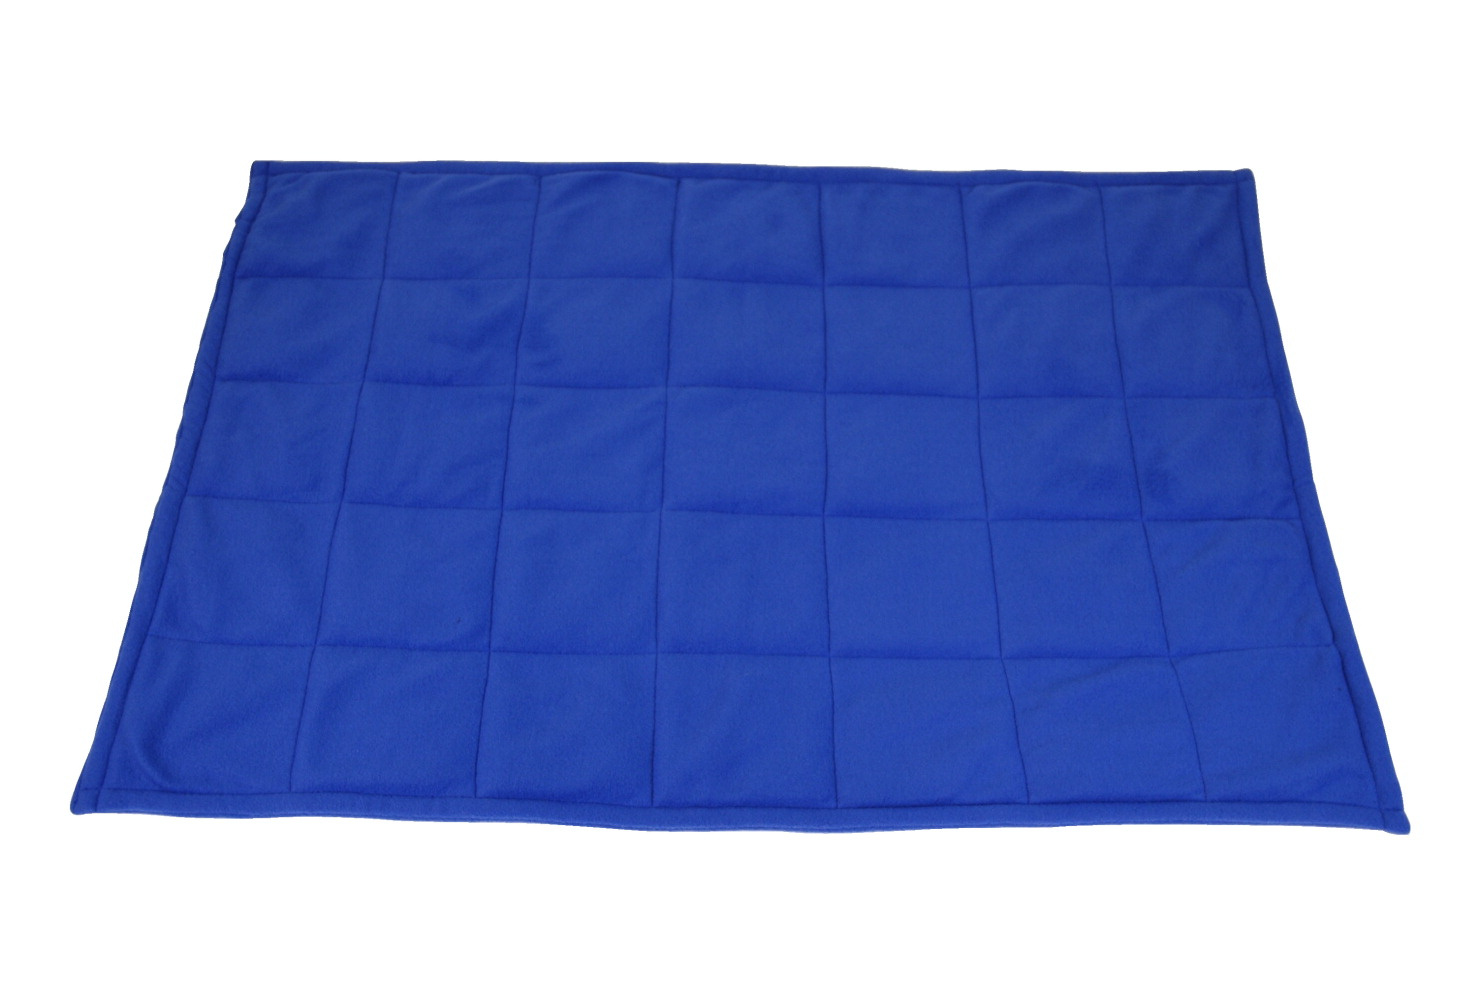 Abilitations Fleece Weighted Blanket, Small, 5 Pounds, Blue